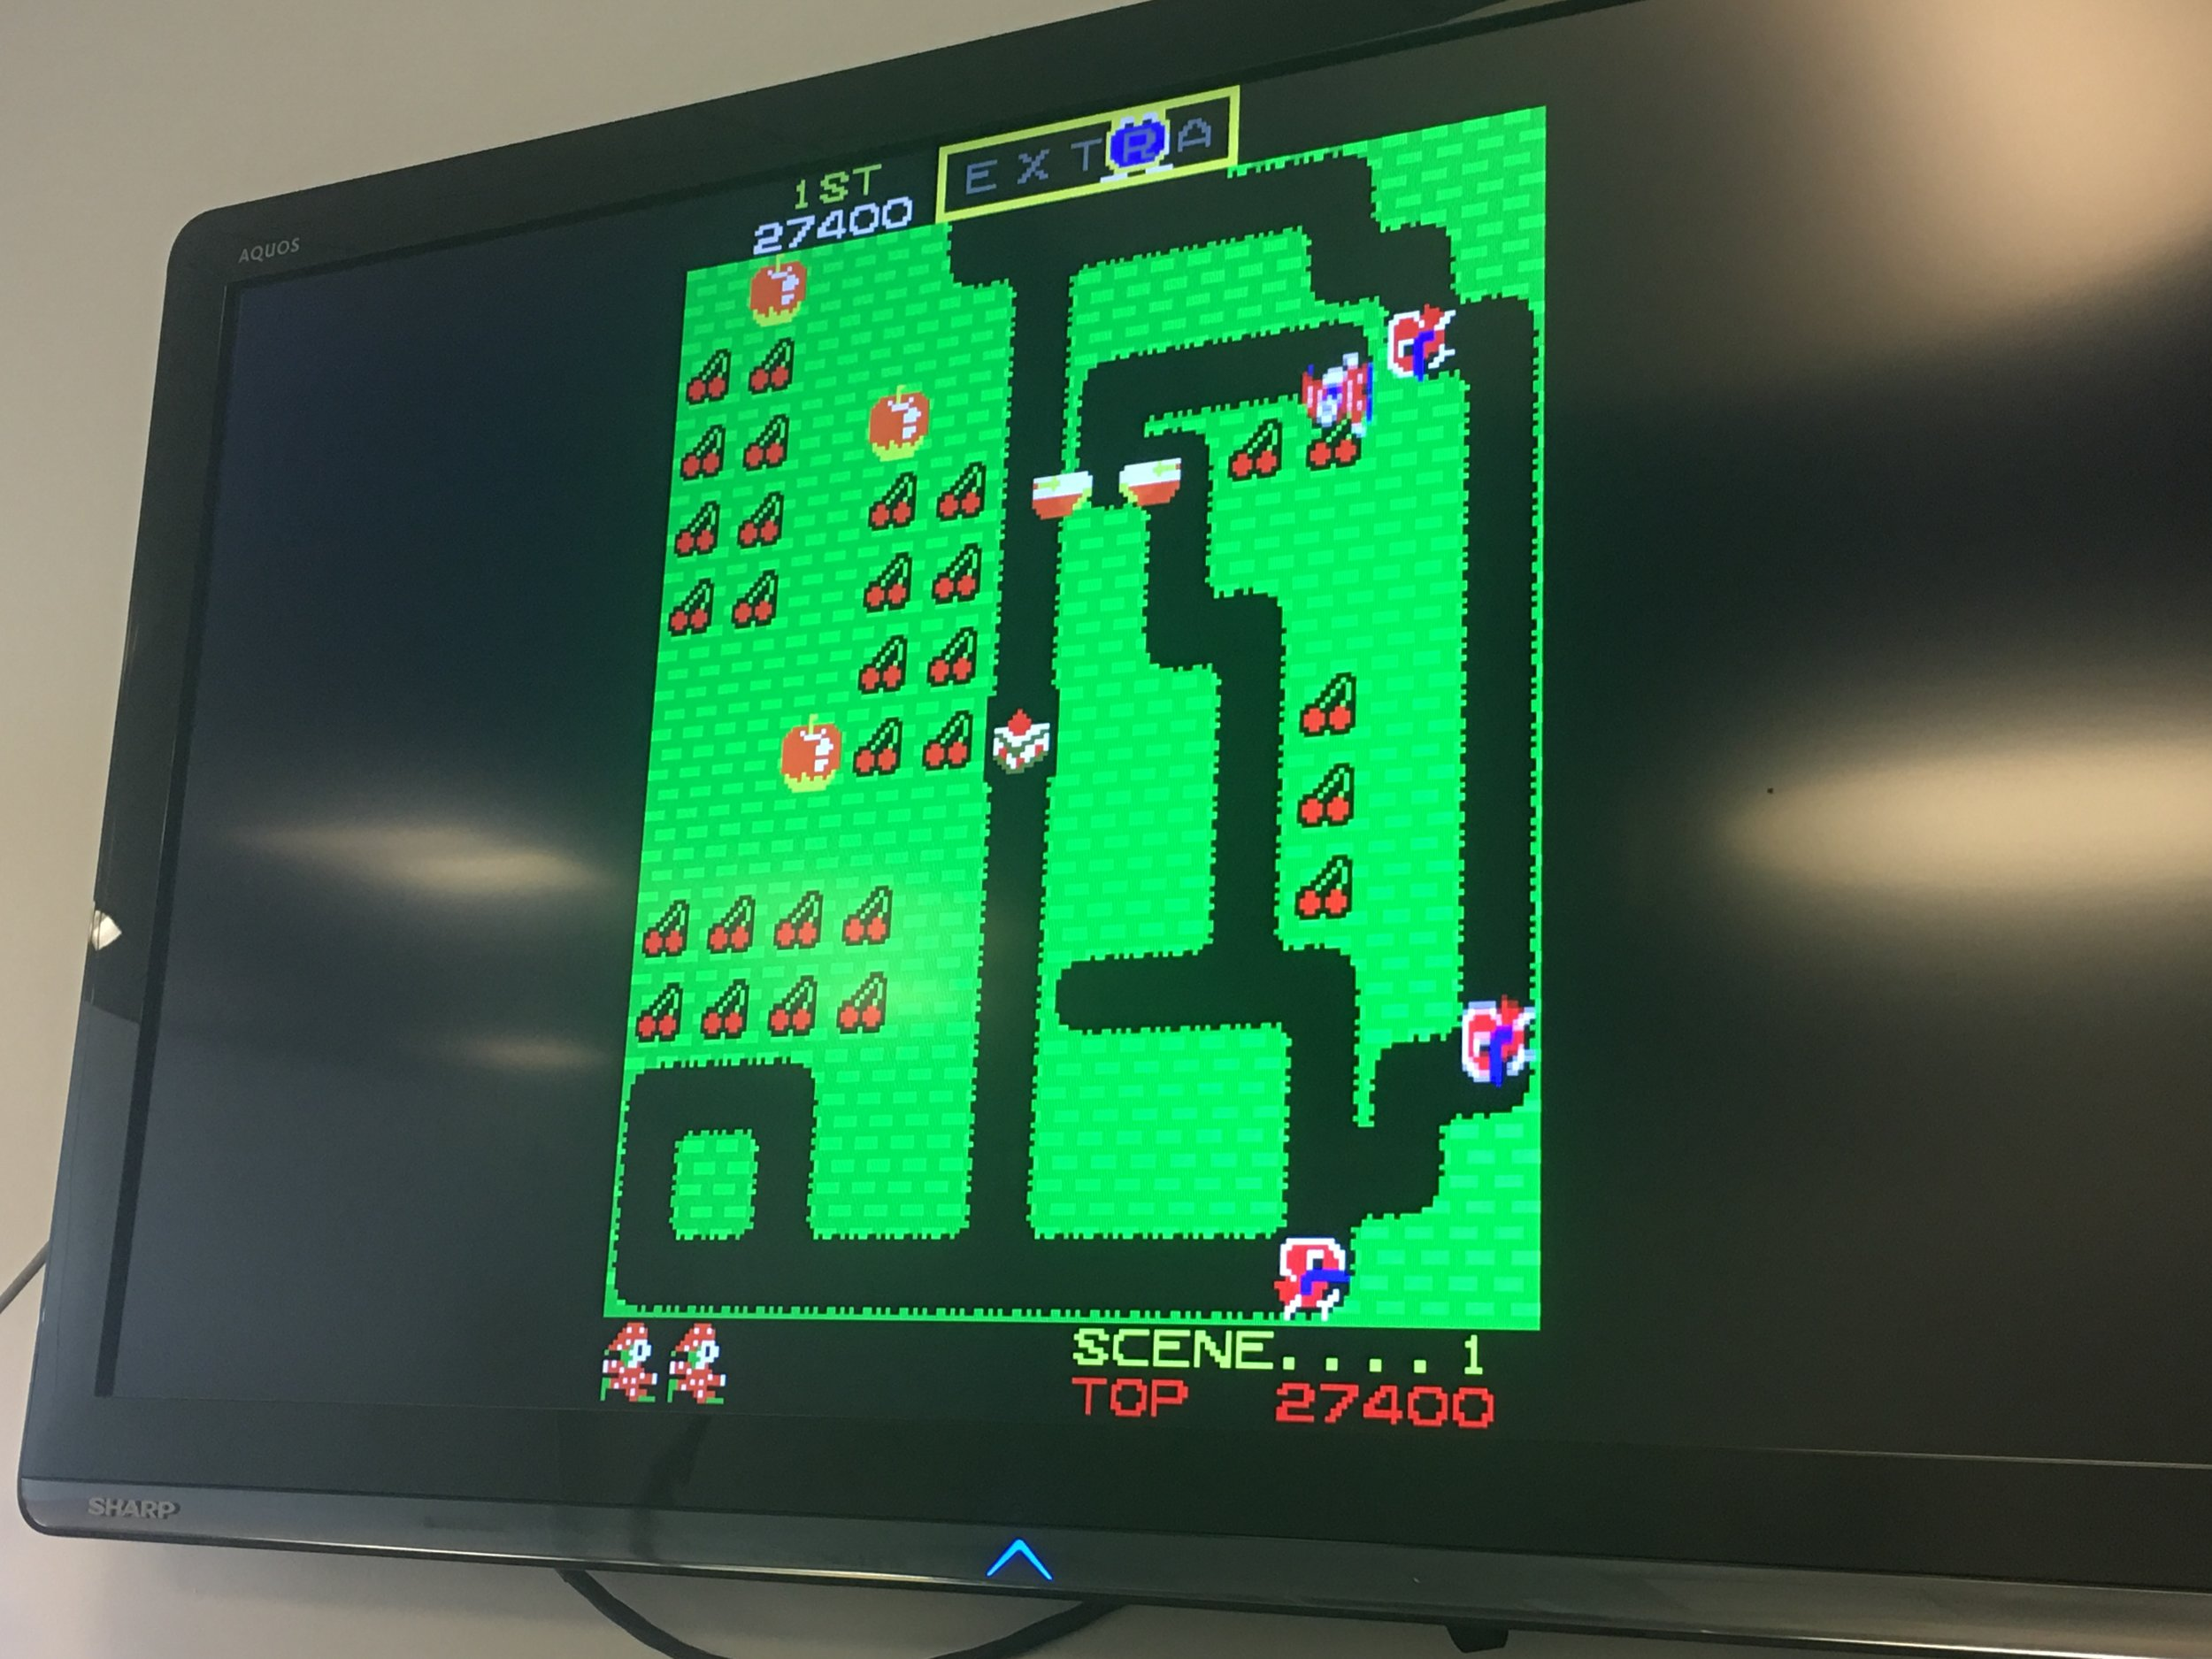 Thanks to emulation, the odd spectacle that is Mr. Do! is now playable in my office.  Booyah!